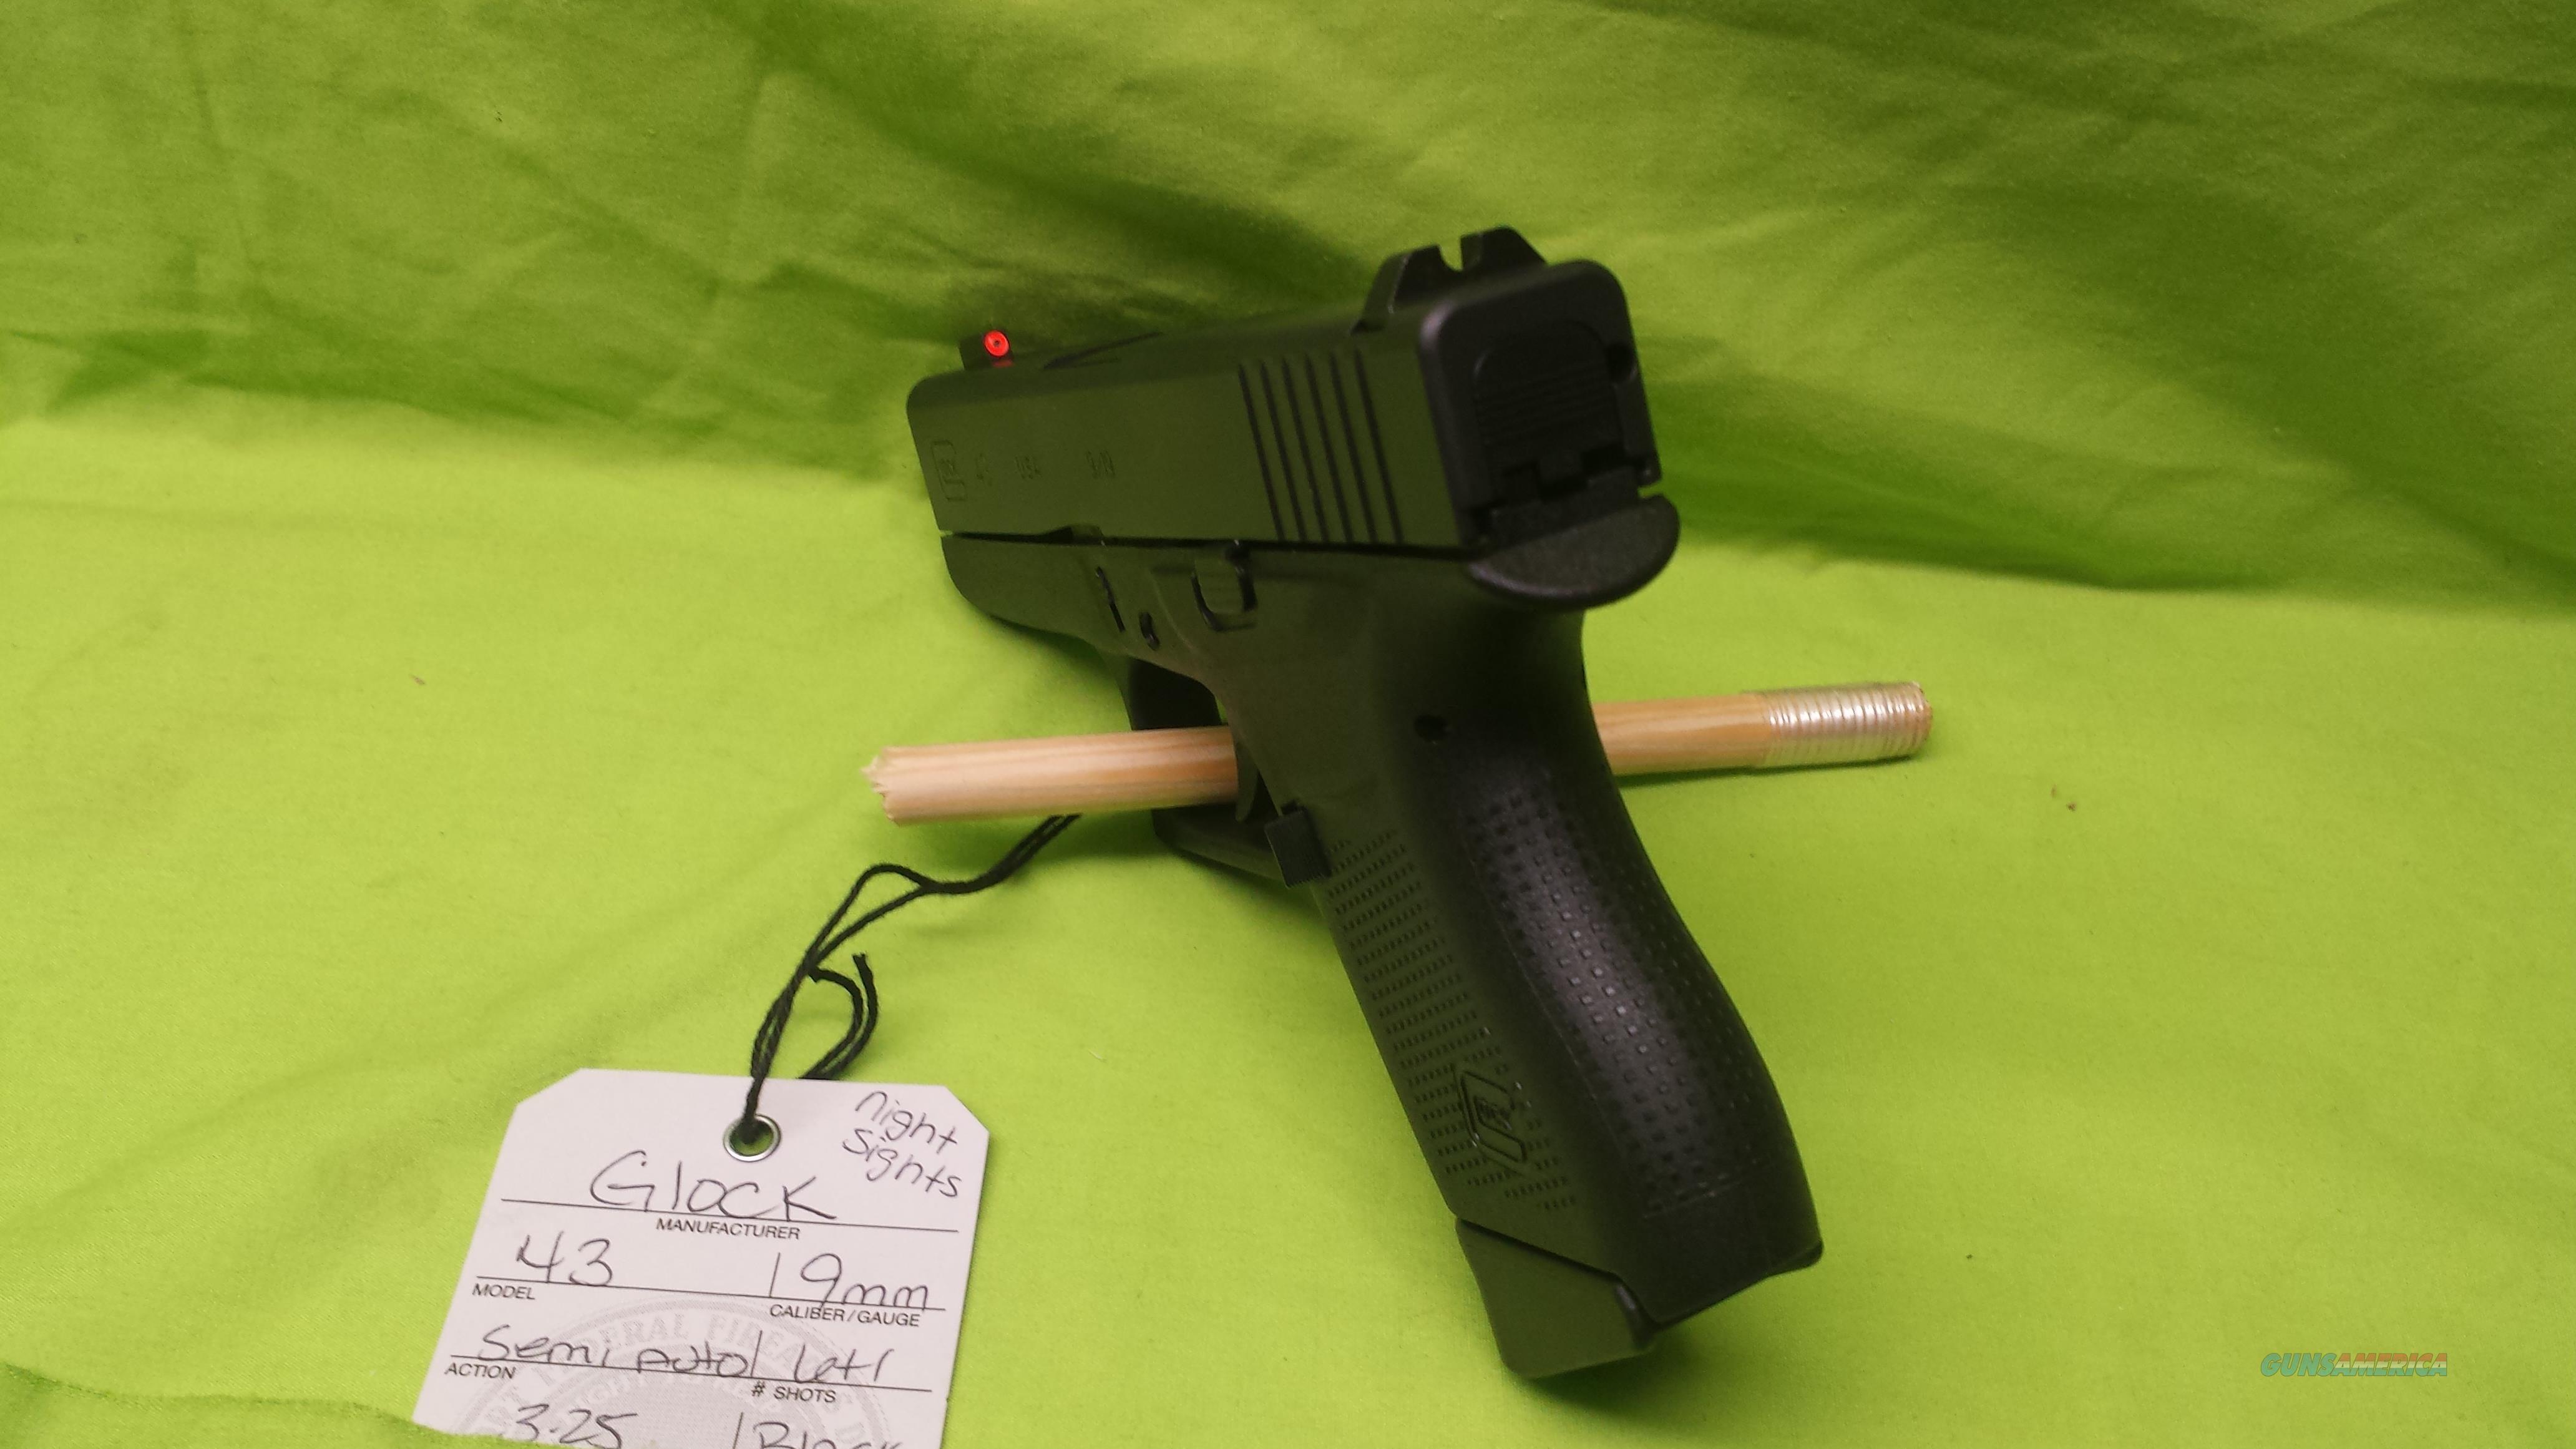 GLOCK 43 9MM 9 MM 6+1 NIGHT SIGHT NS SINGLE STACK  Guns > Pistols > Glock Pistols > 43